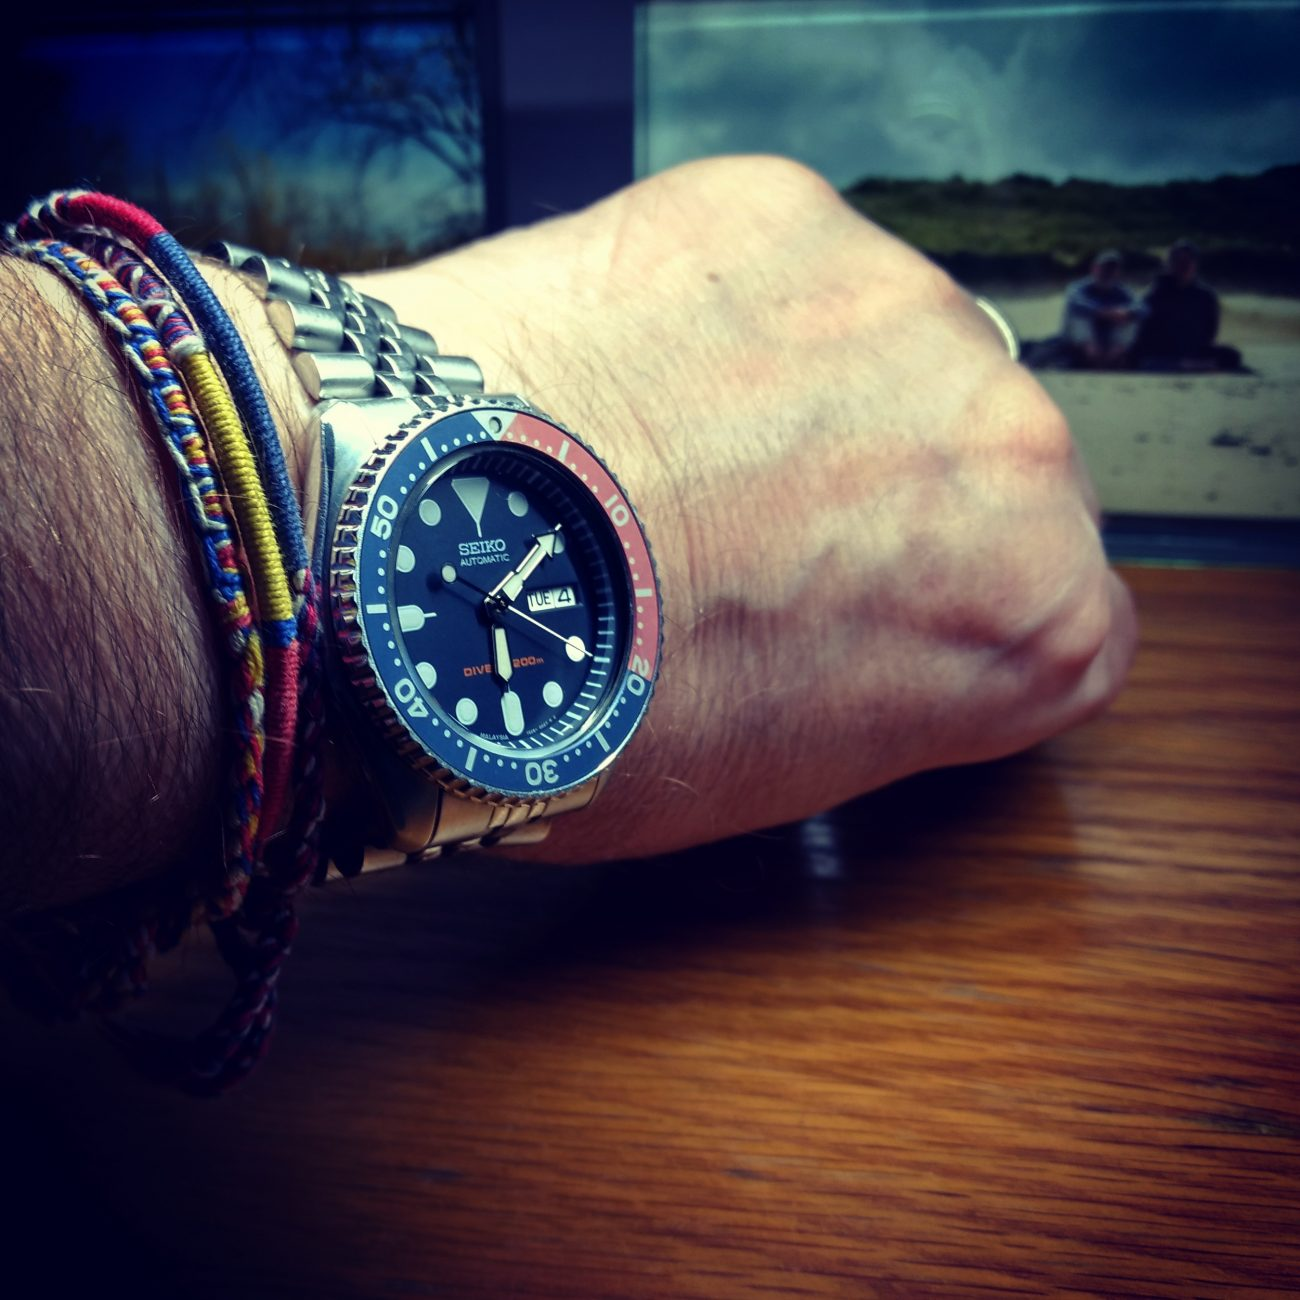 Photograph of a loose fitting Seiko Diver's Watch